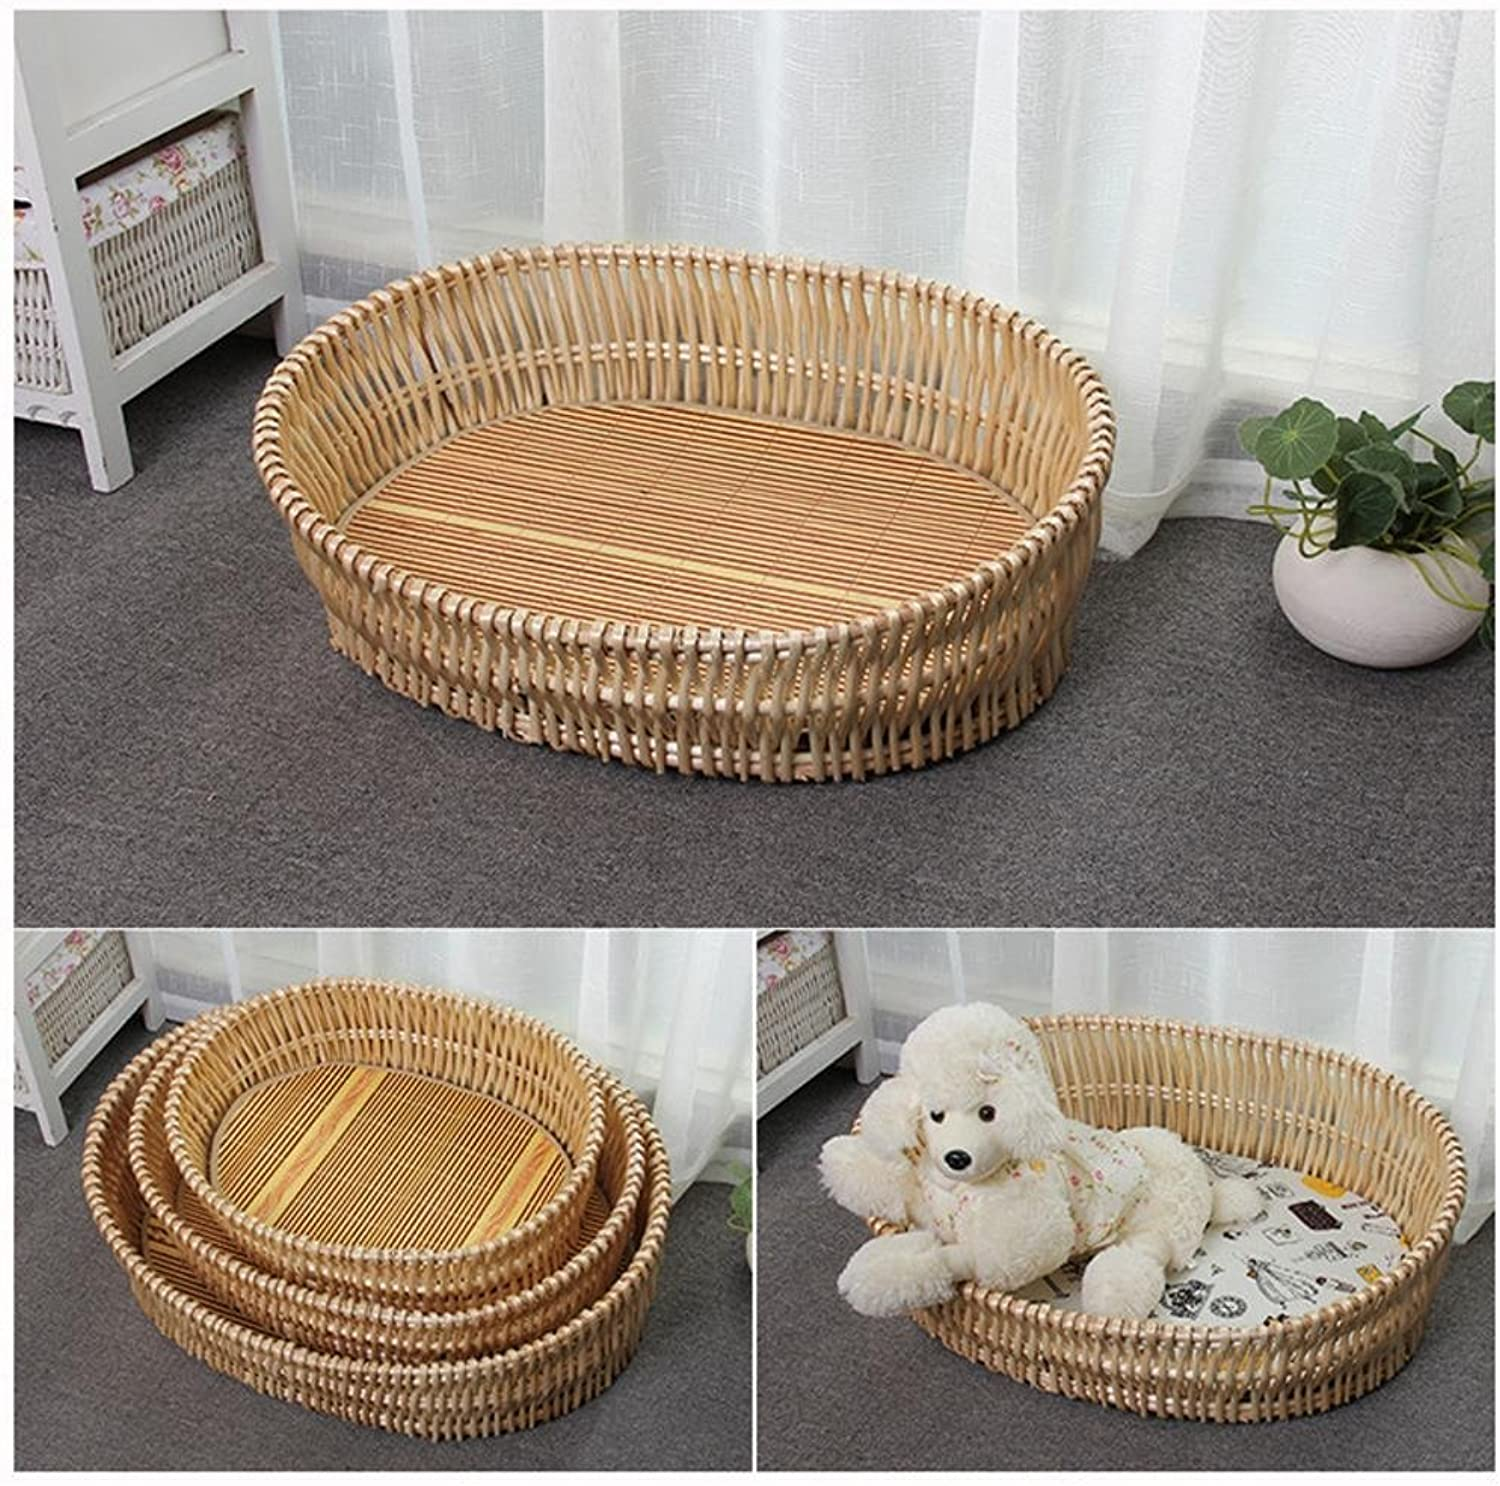 Lozse Pet Beds Washable Kennel Rattan dog house cat cage Willow Pet Nest Size type 70x50cm for Dogs and Cats Sleeping Cushion